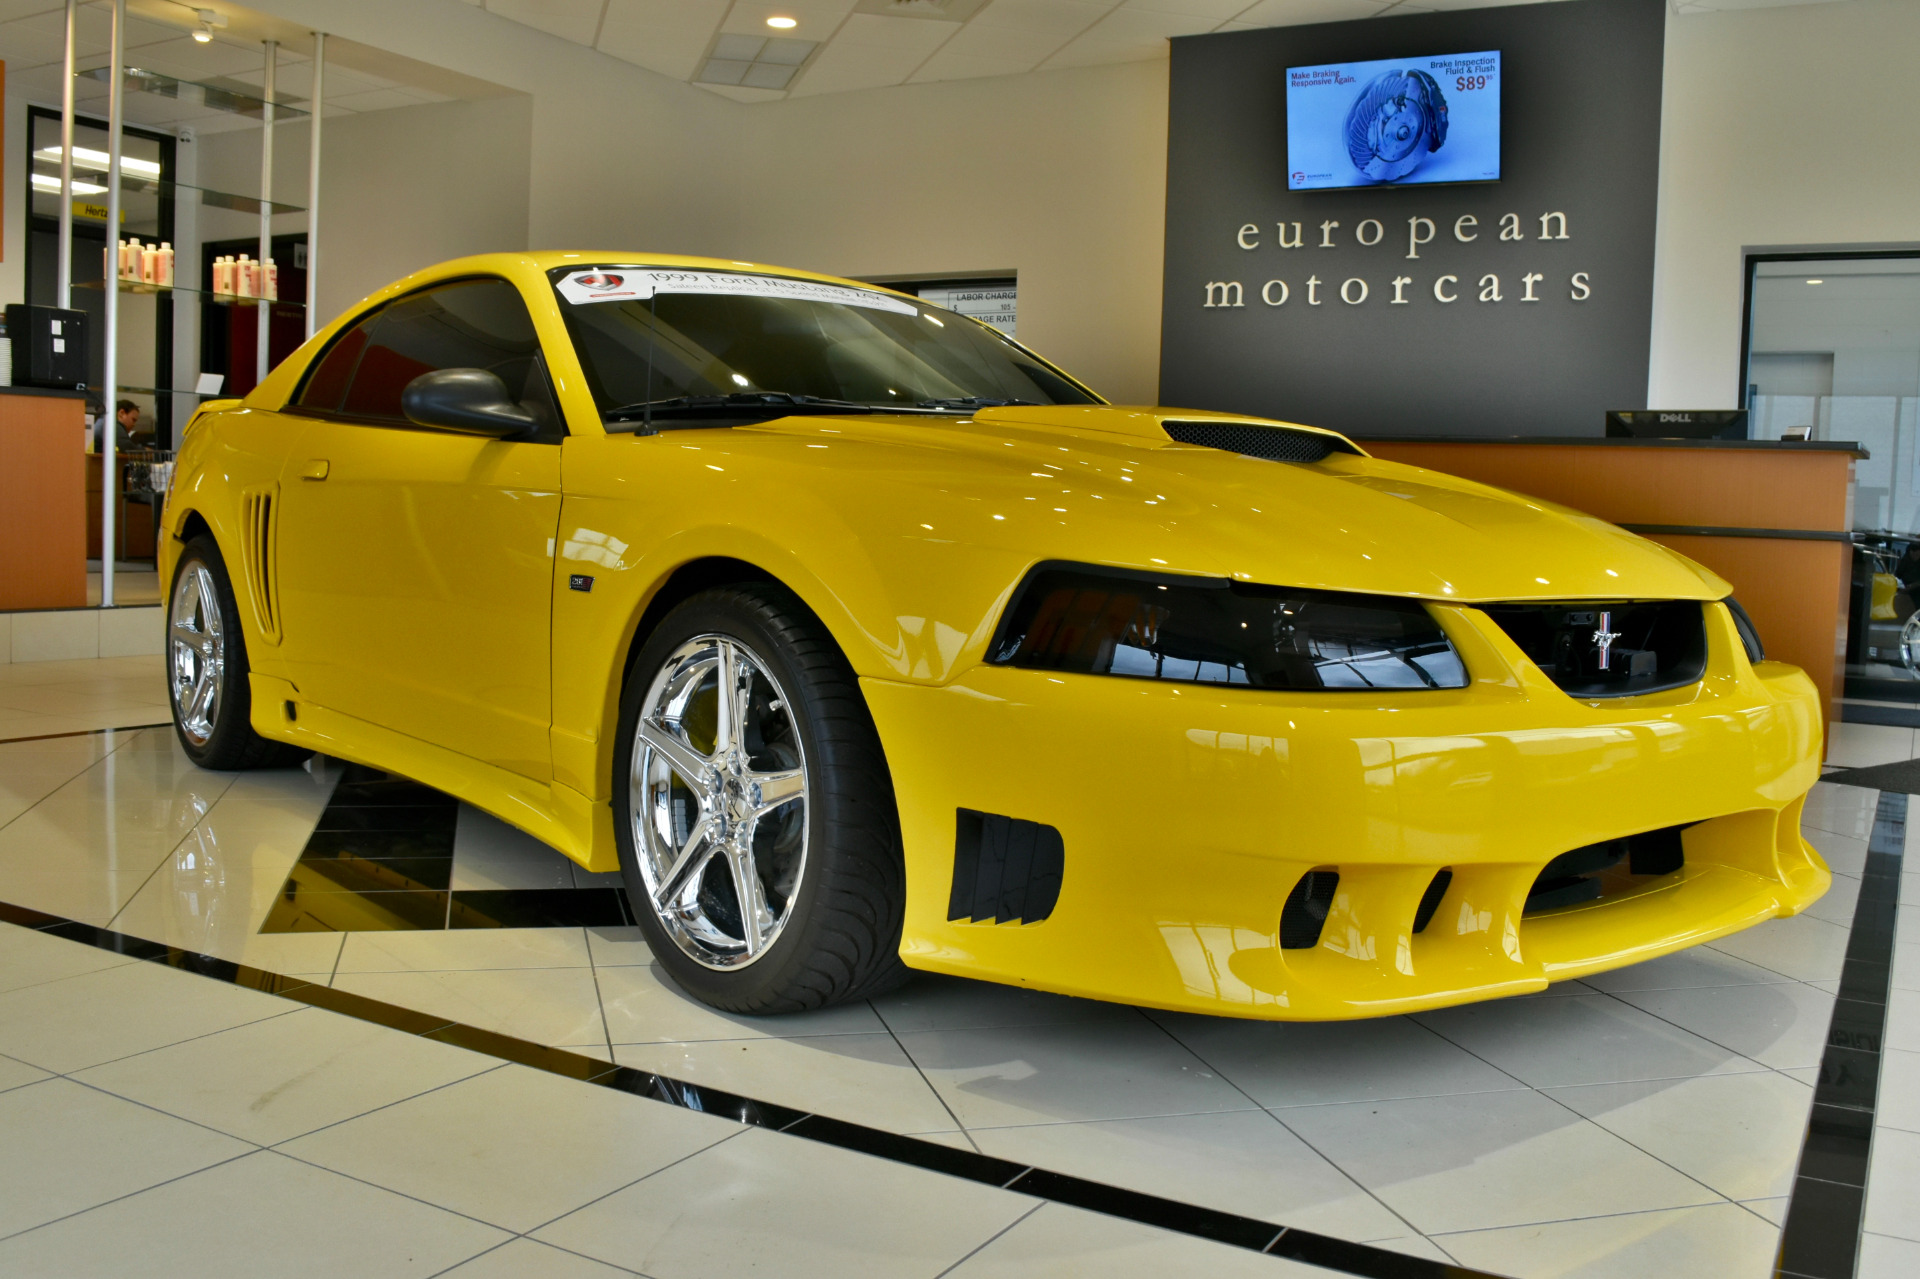 1999 ford mustang saleen replica gt for sale near middletown ct ct ford dealer stock 192911. Black Bedroom Furniture Sets. Home Design Ideas